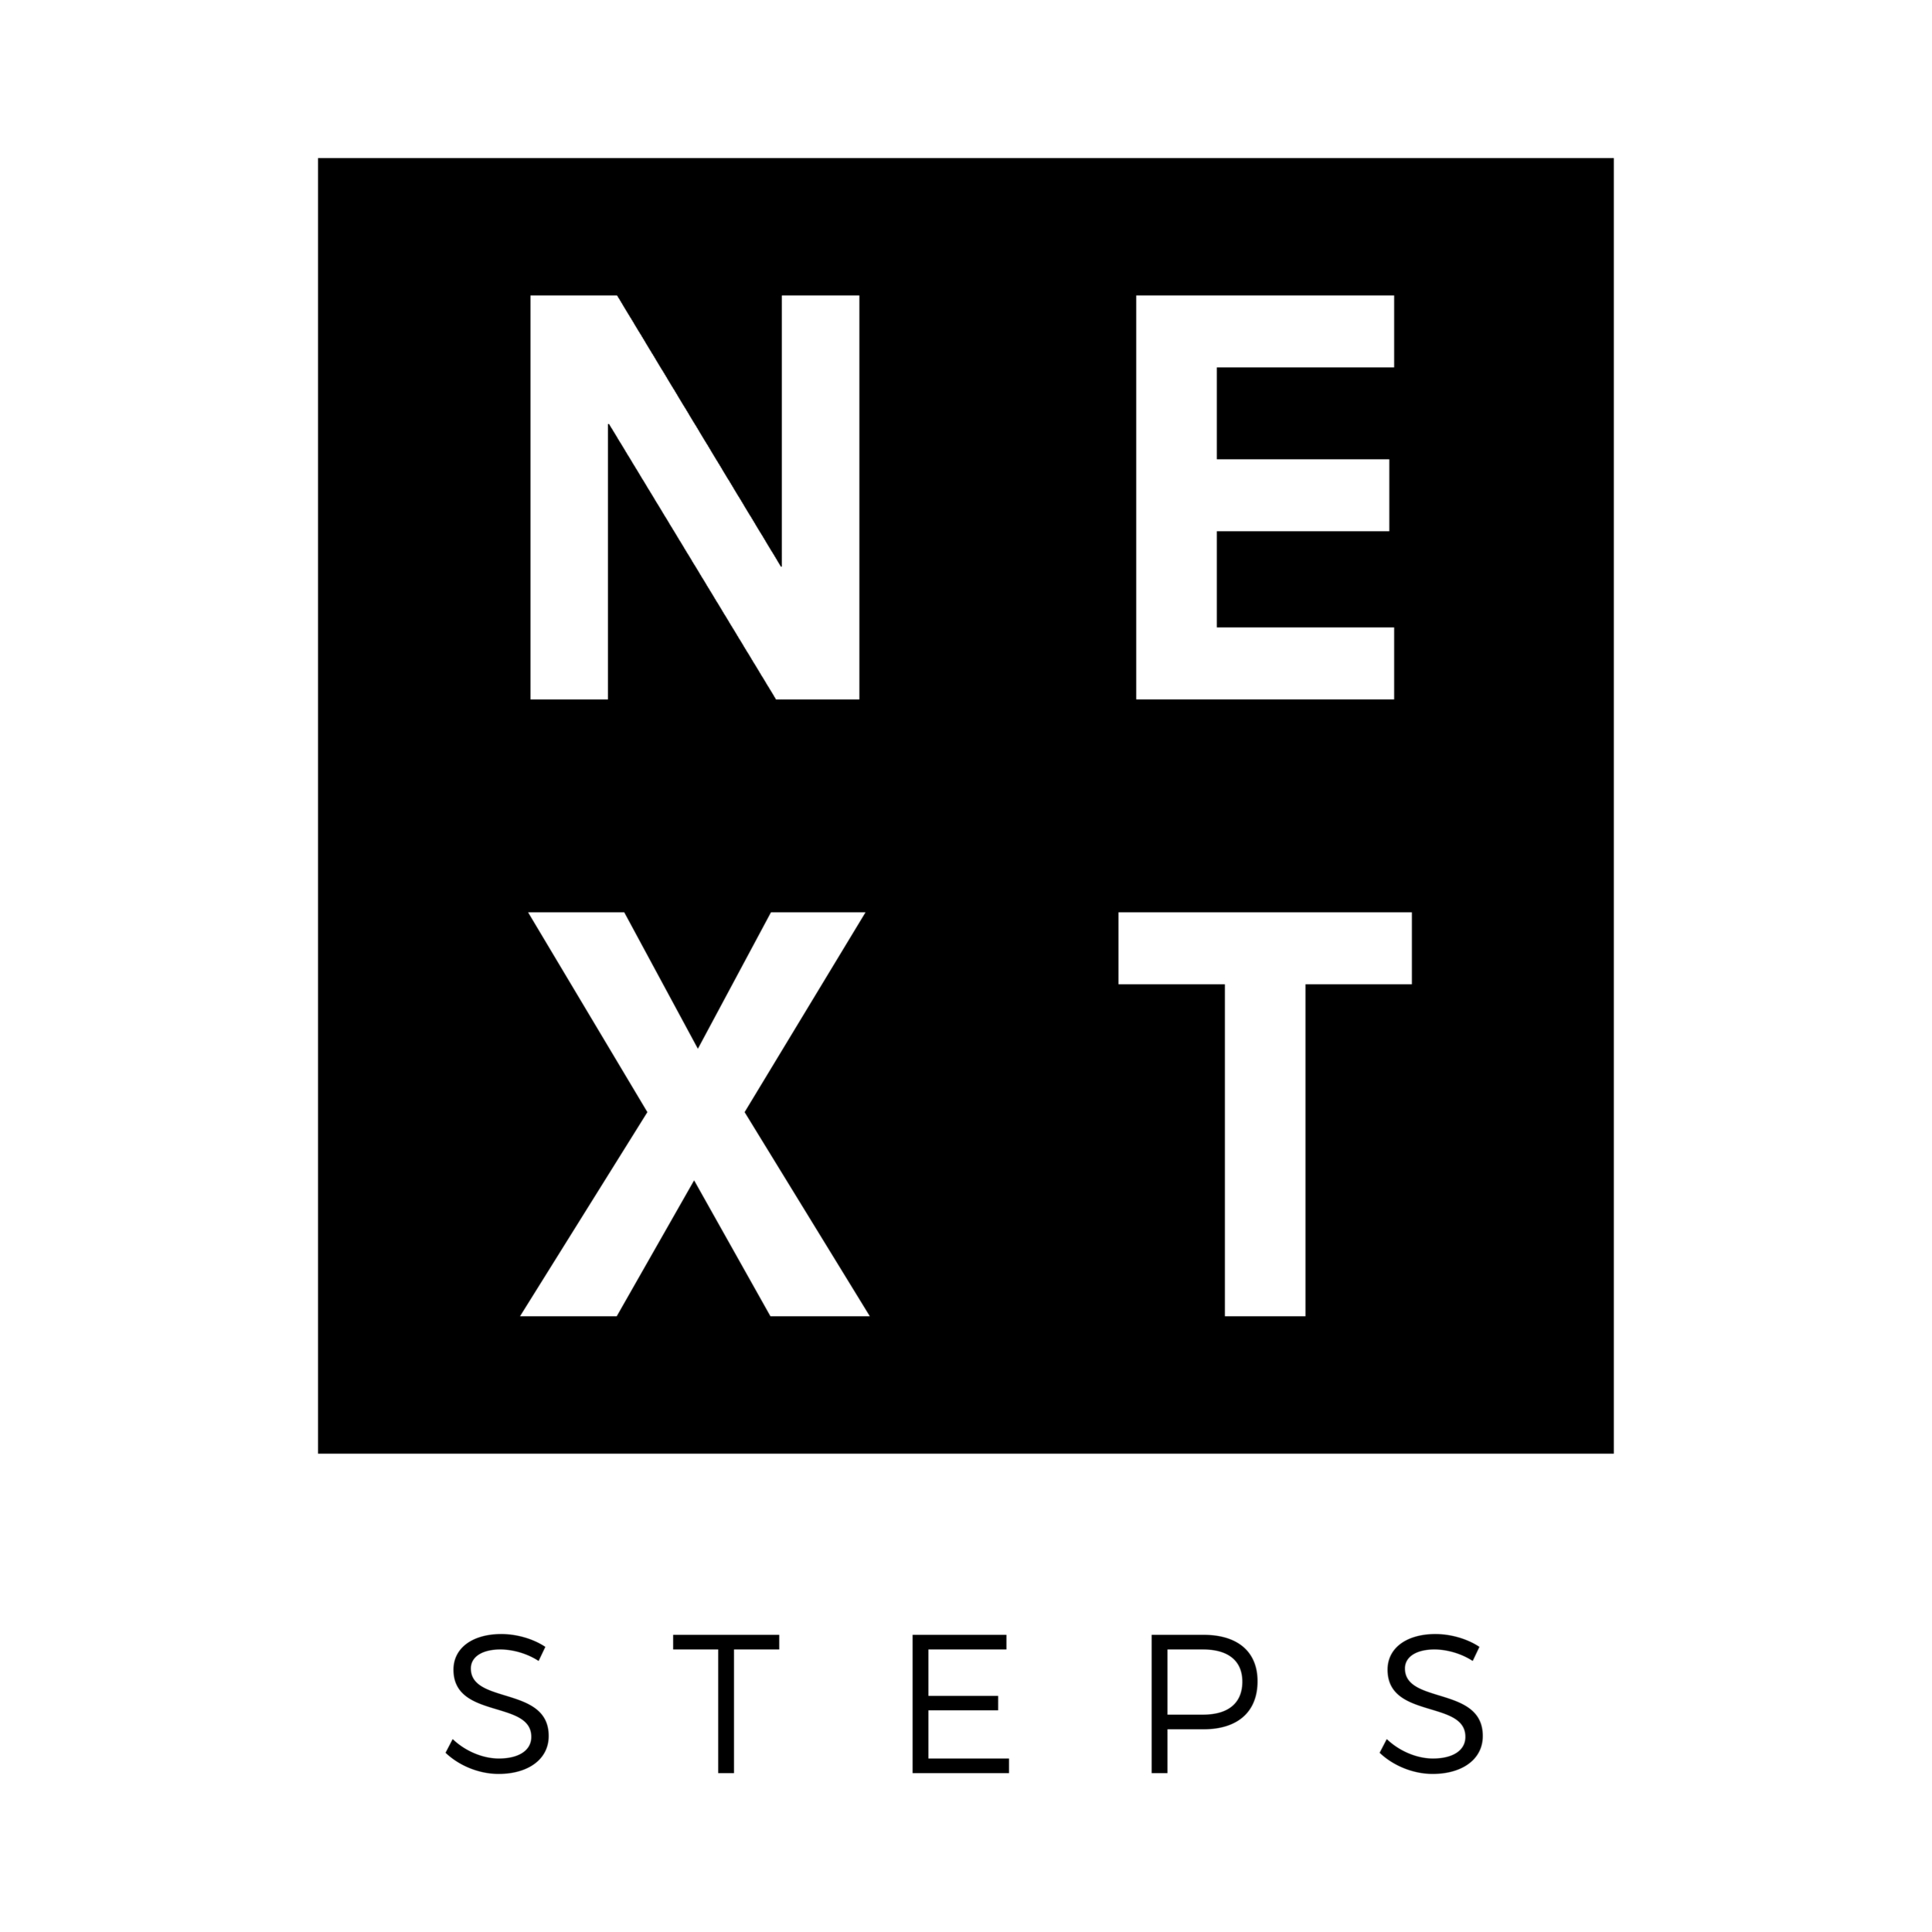 Next Steps - A four step journey that guides you to live the life God has created for you. This journey equips you to follow Jesus, connect to church, discover your purpose and make a difference.